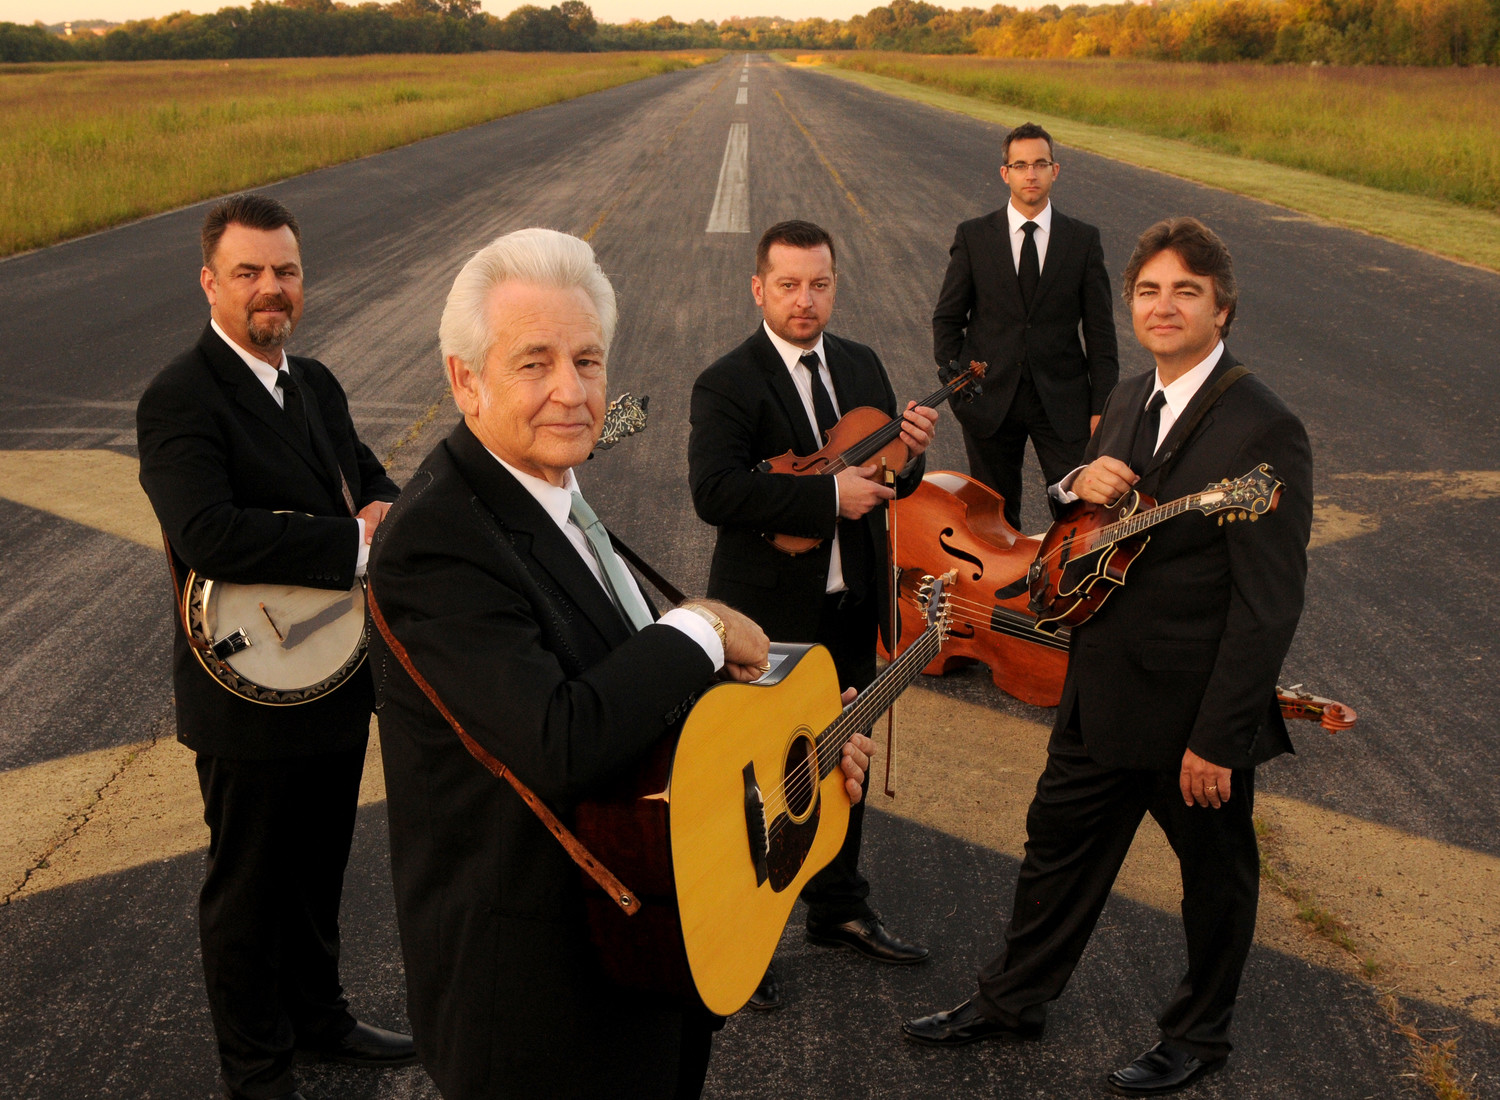 The Del McCoury Band will close out the 2017-18 Main Stage Series on March 24, 2018. Those who become members of the series will get numerous perks, including the ability to get tickets early and opportunities to meet many of the performers.